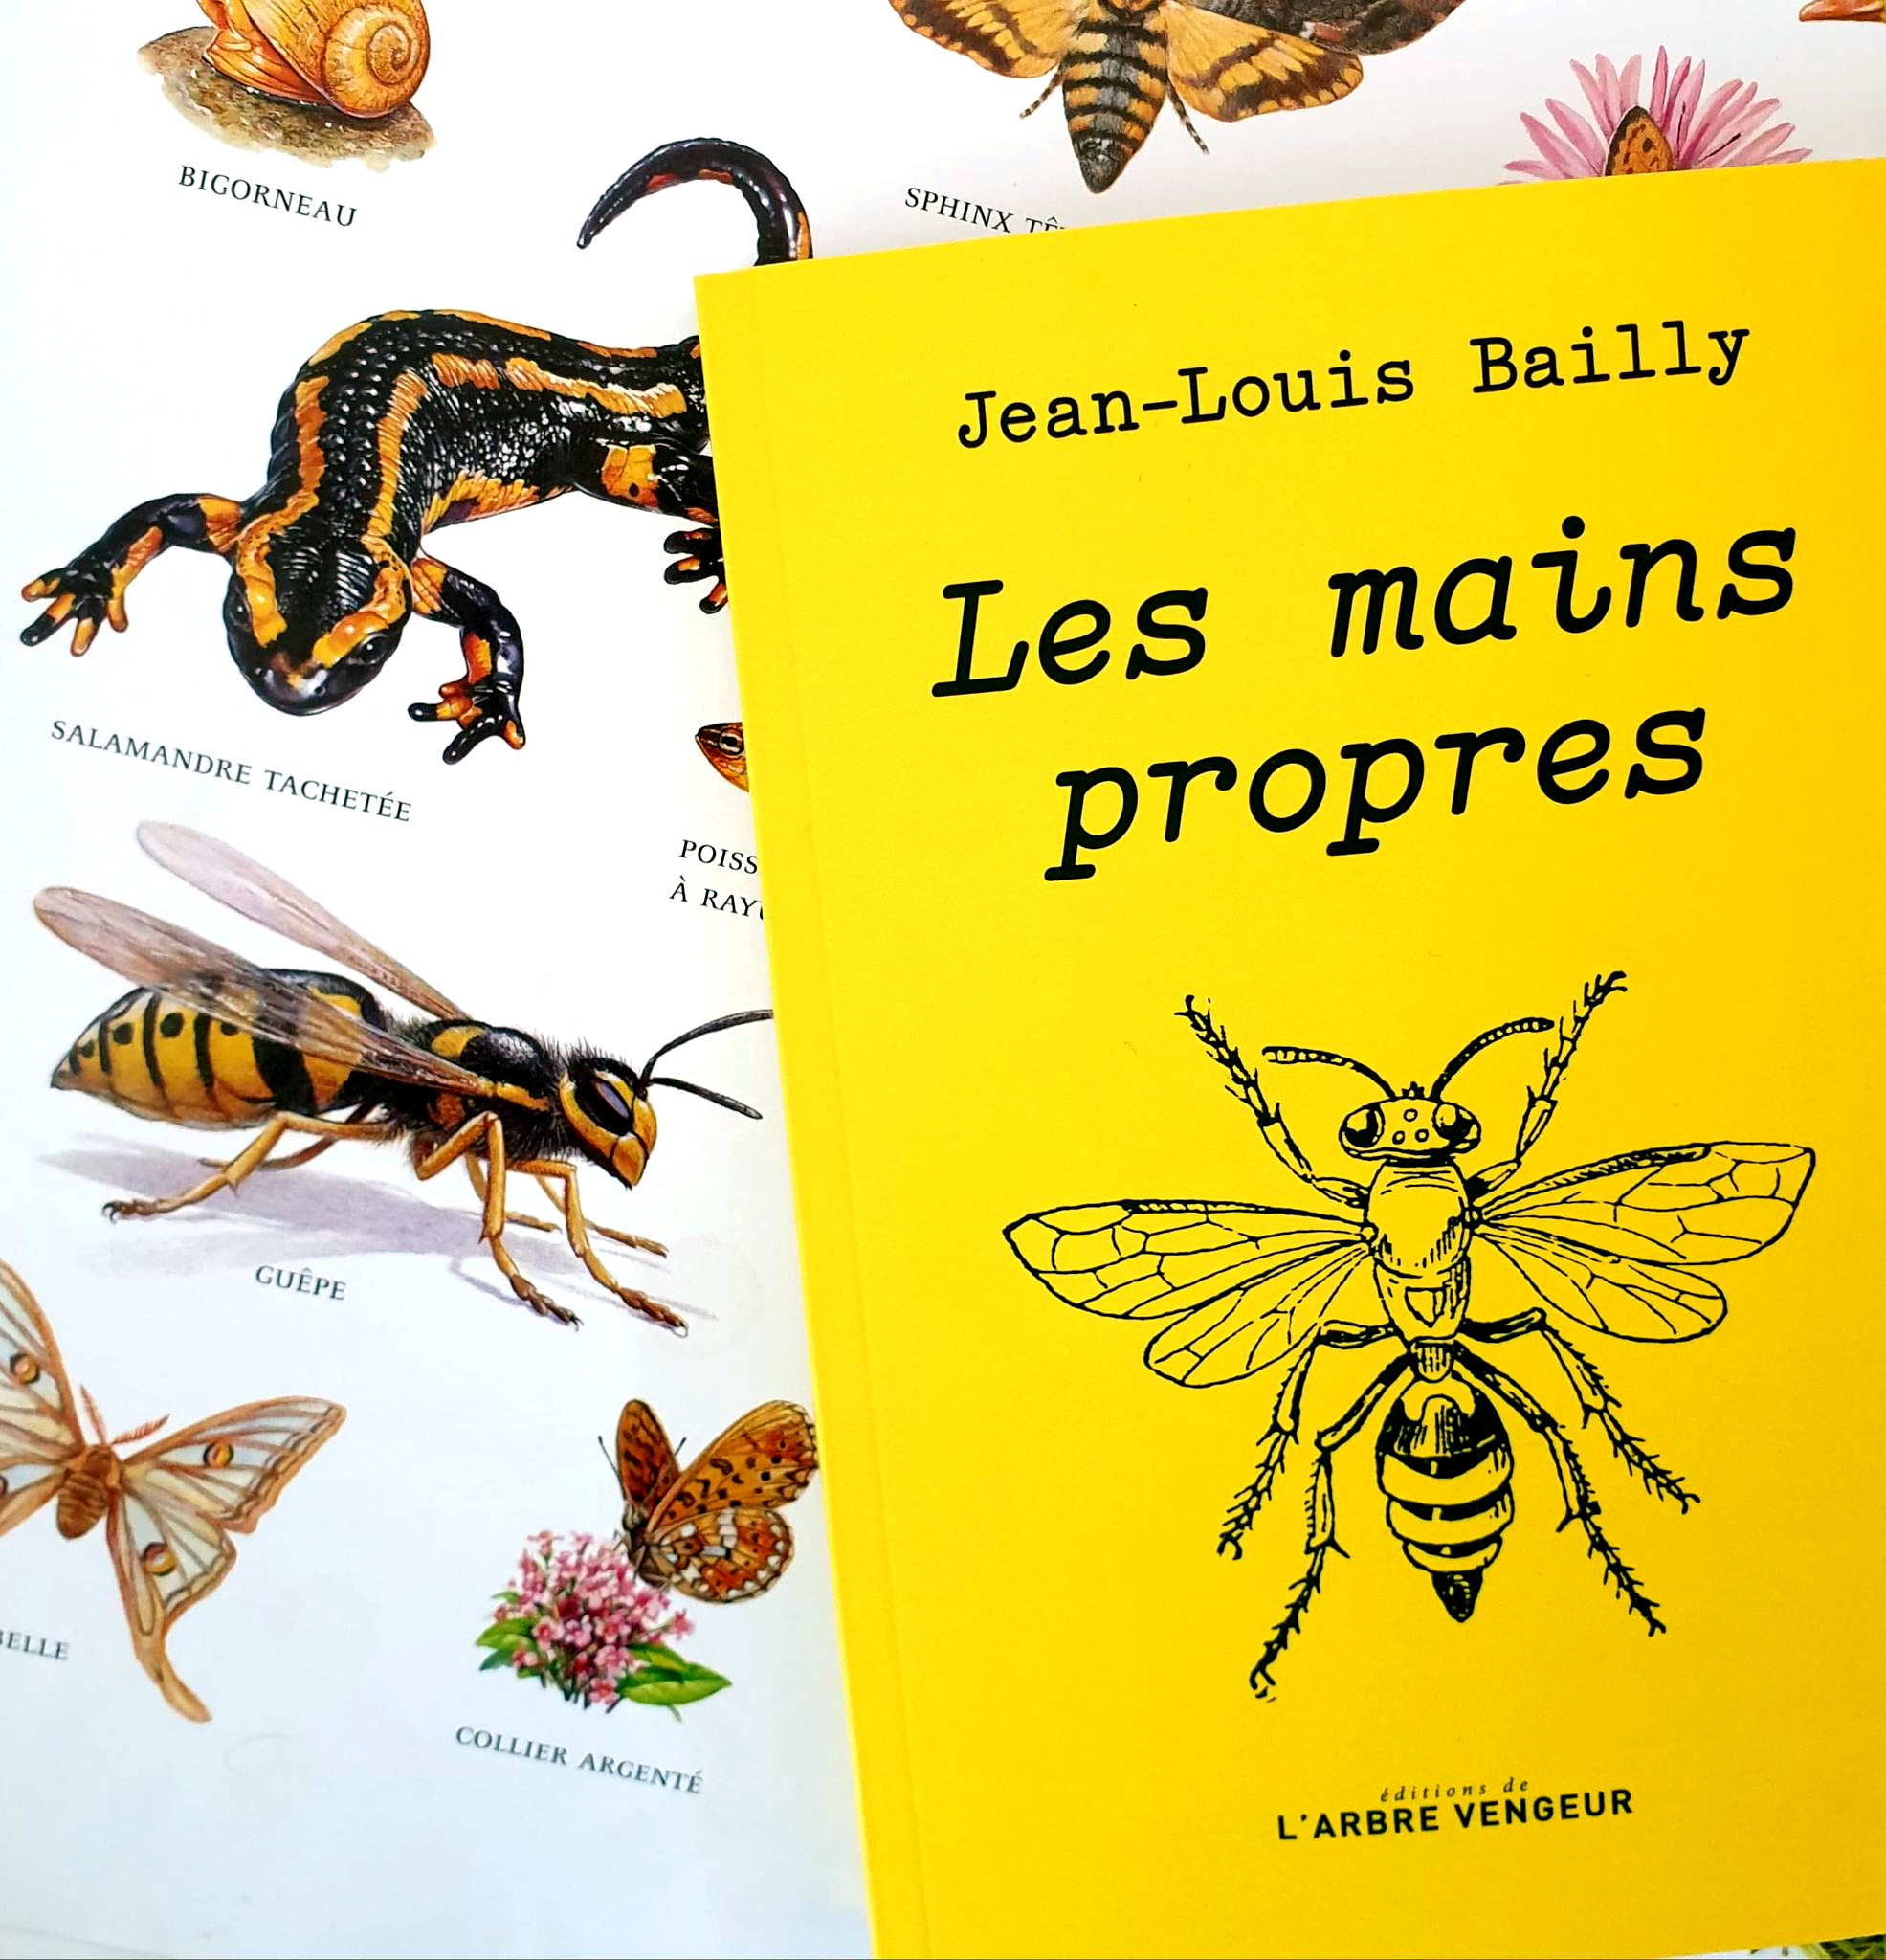 les mains propres, Jean-Louis Bailly